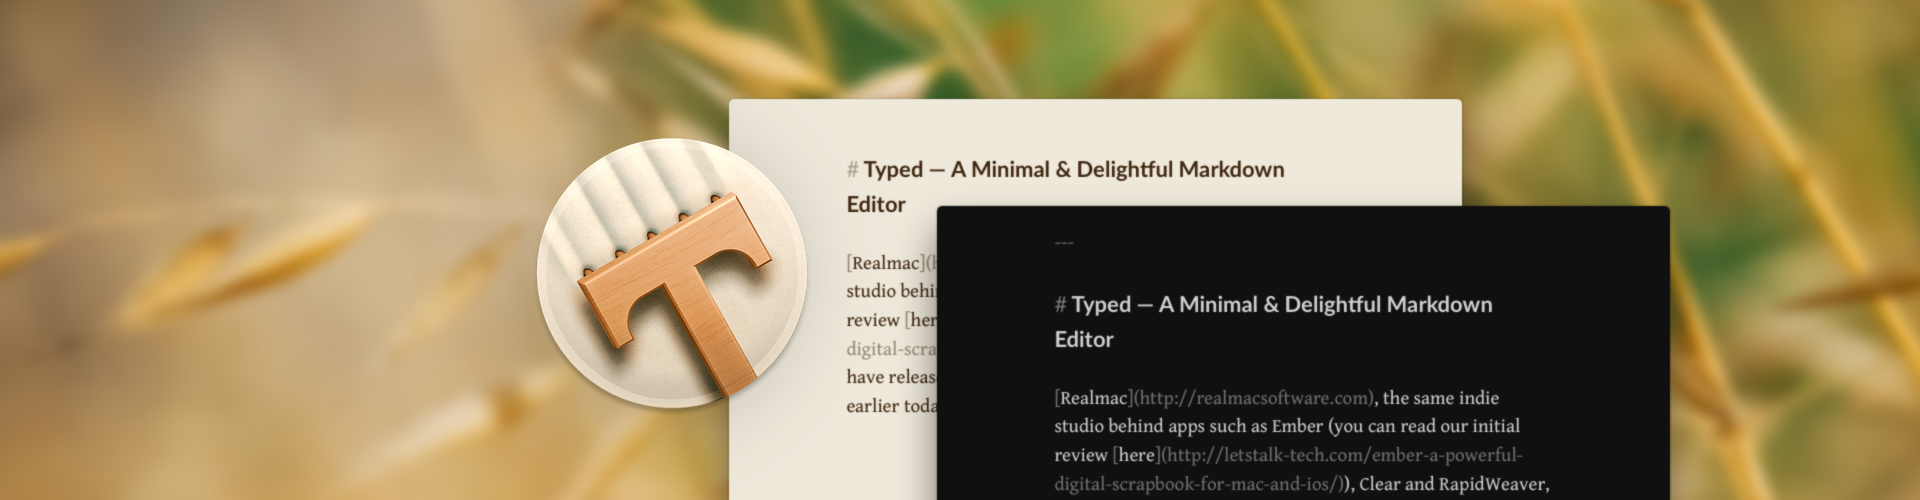 Typed: A Minimal & Delightful Markdown Editor for the Mac